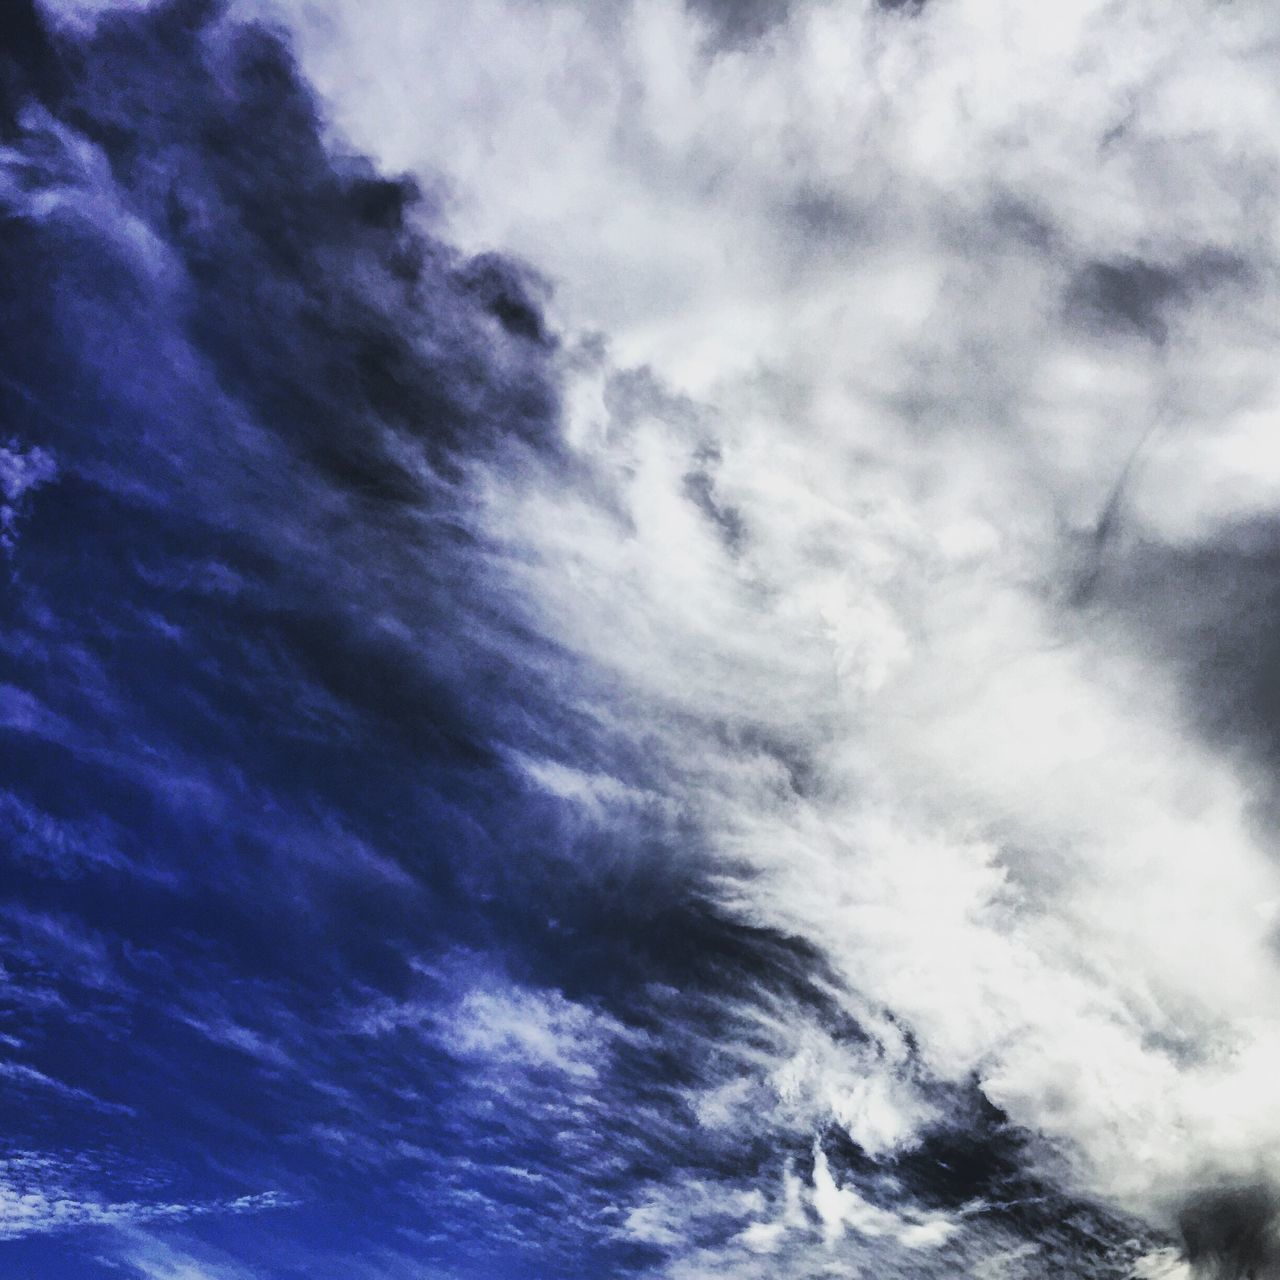 sky, low angle view, cloud - sky, beauty in nature, nature, scenics, blue, backgrounds, cloudscape, sky only, no people, tranquility, tranquil scene, full frame, day, outdoors